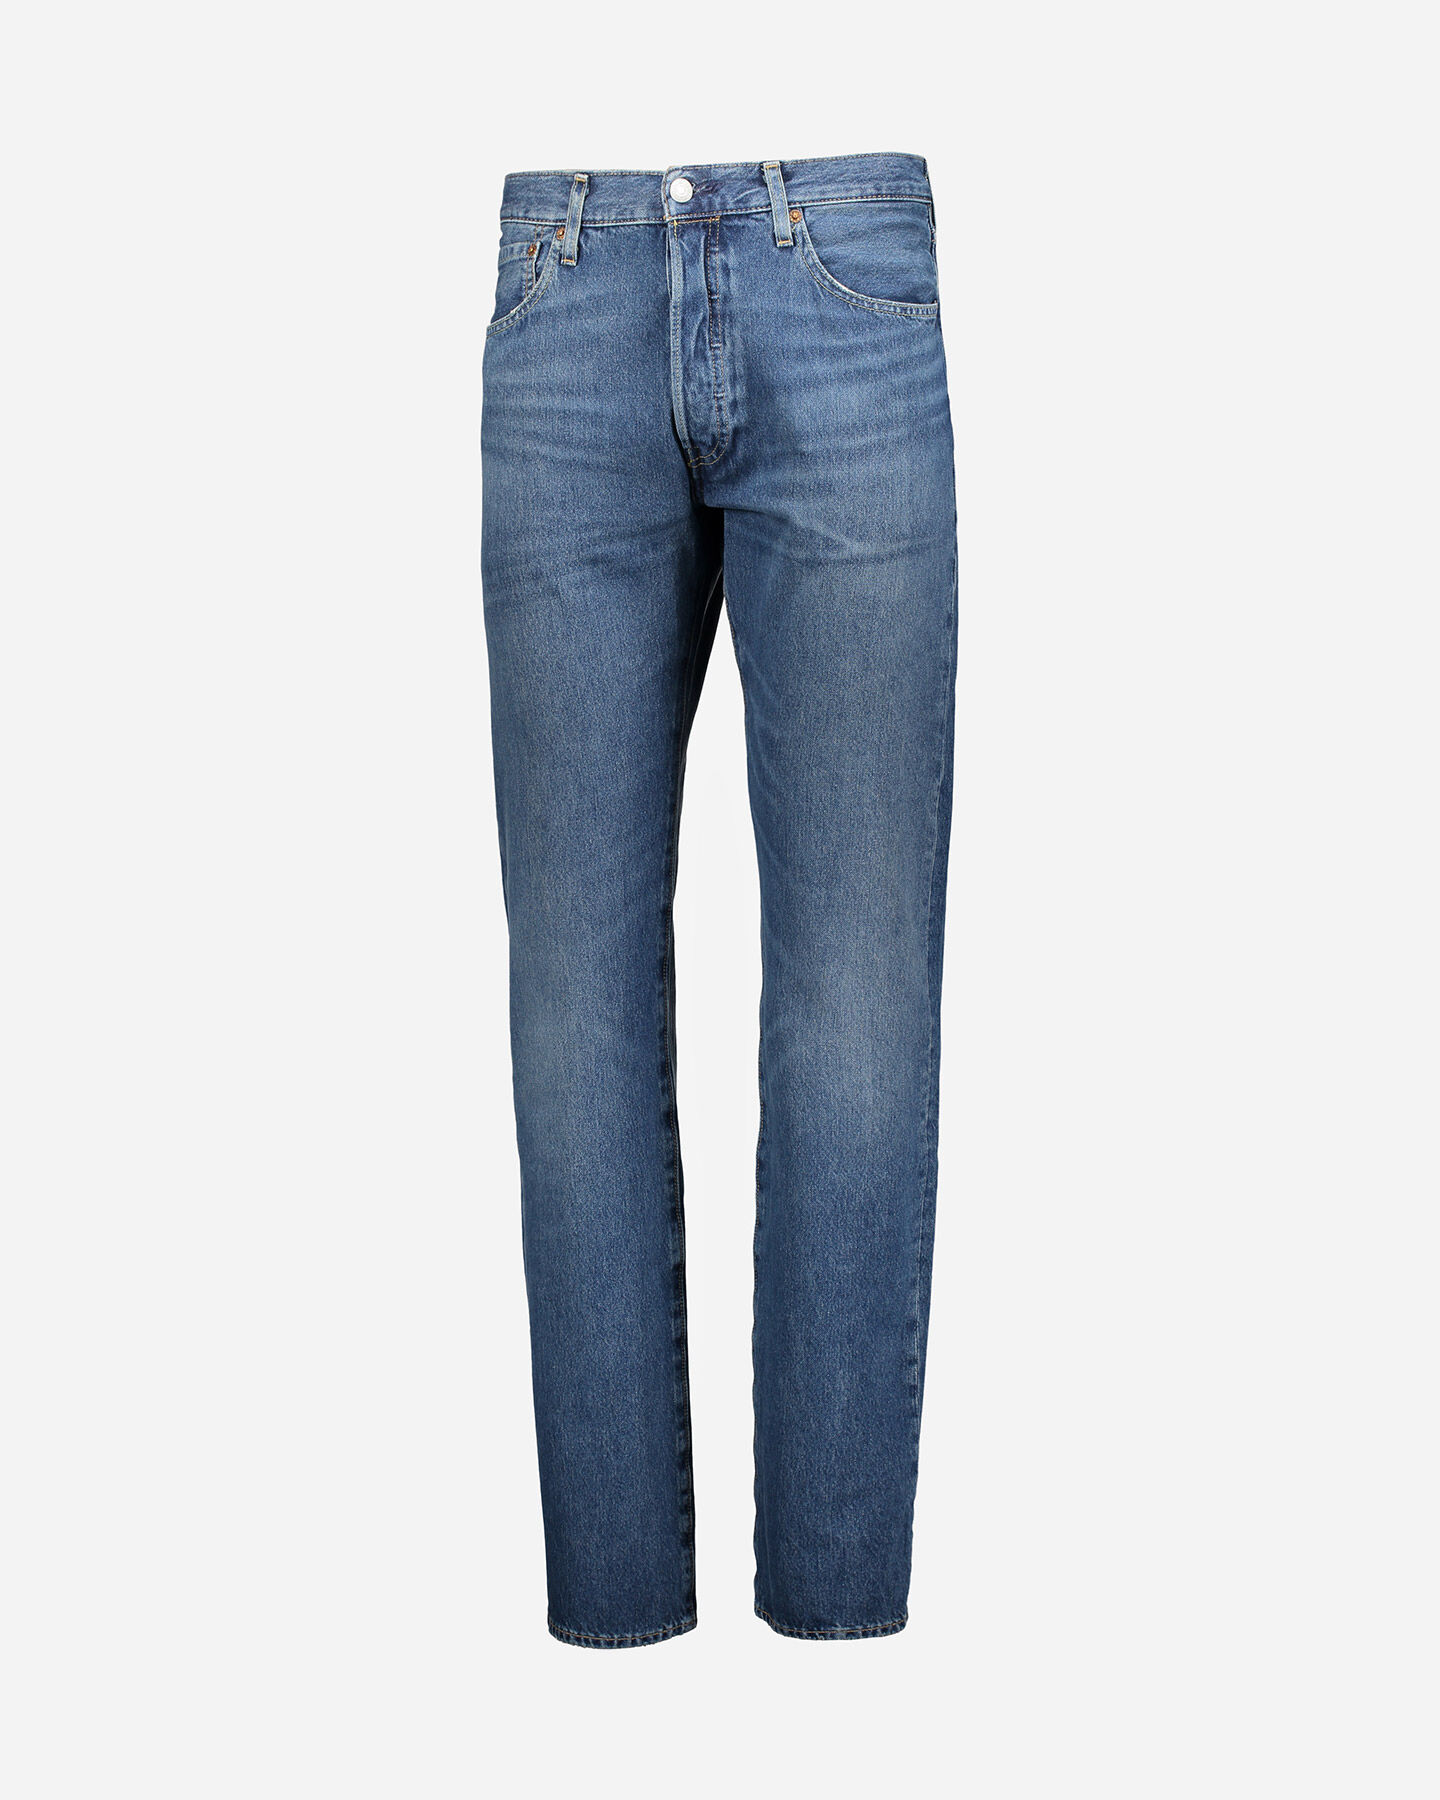 Jeans LEVI'S 501 REGULAR M S4070547 scatto 0